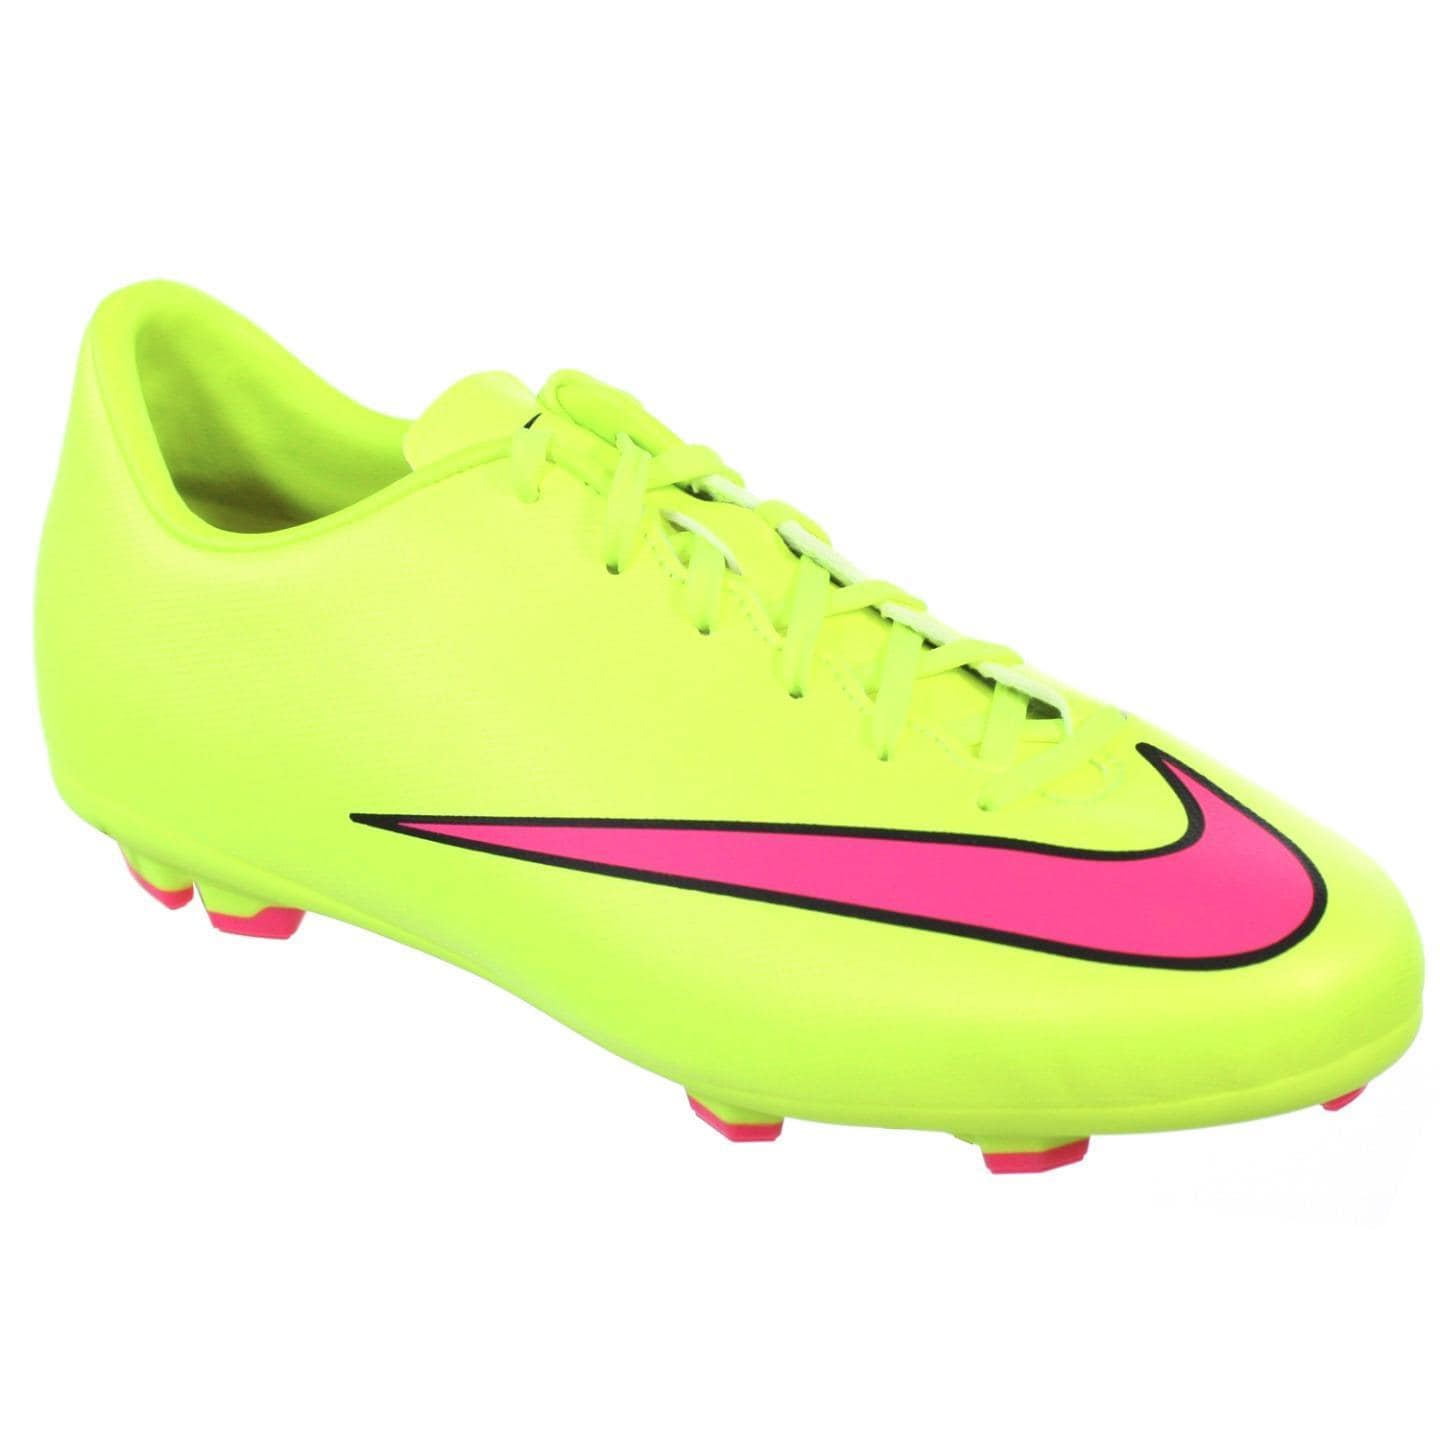 f9a5086a0c57 Shop Nike Jr Youth Mercurial Victory Volt FG 3.5 Y Pink Black Molded Soccer  Cleats - Free Shipping Today - Overstock - 15033484